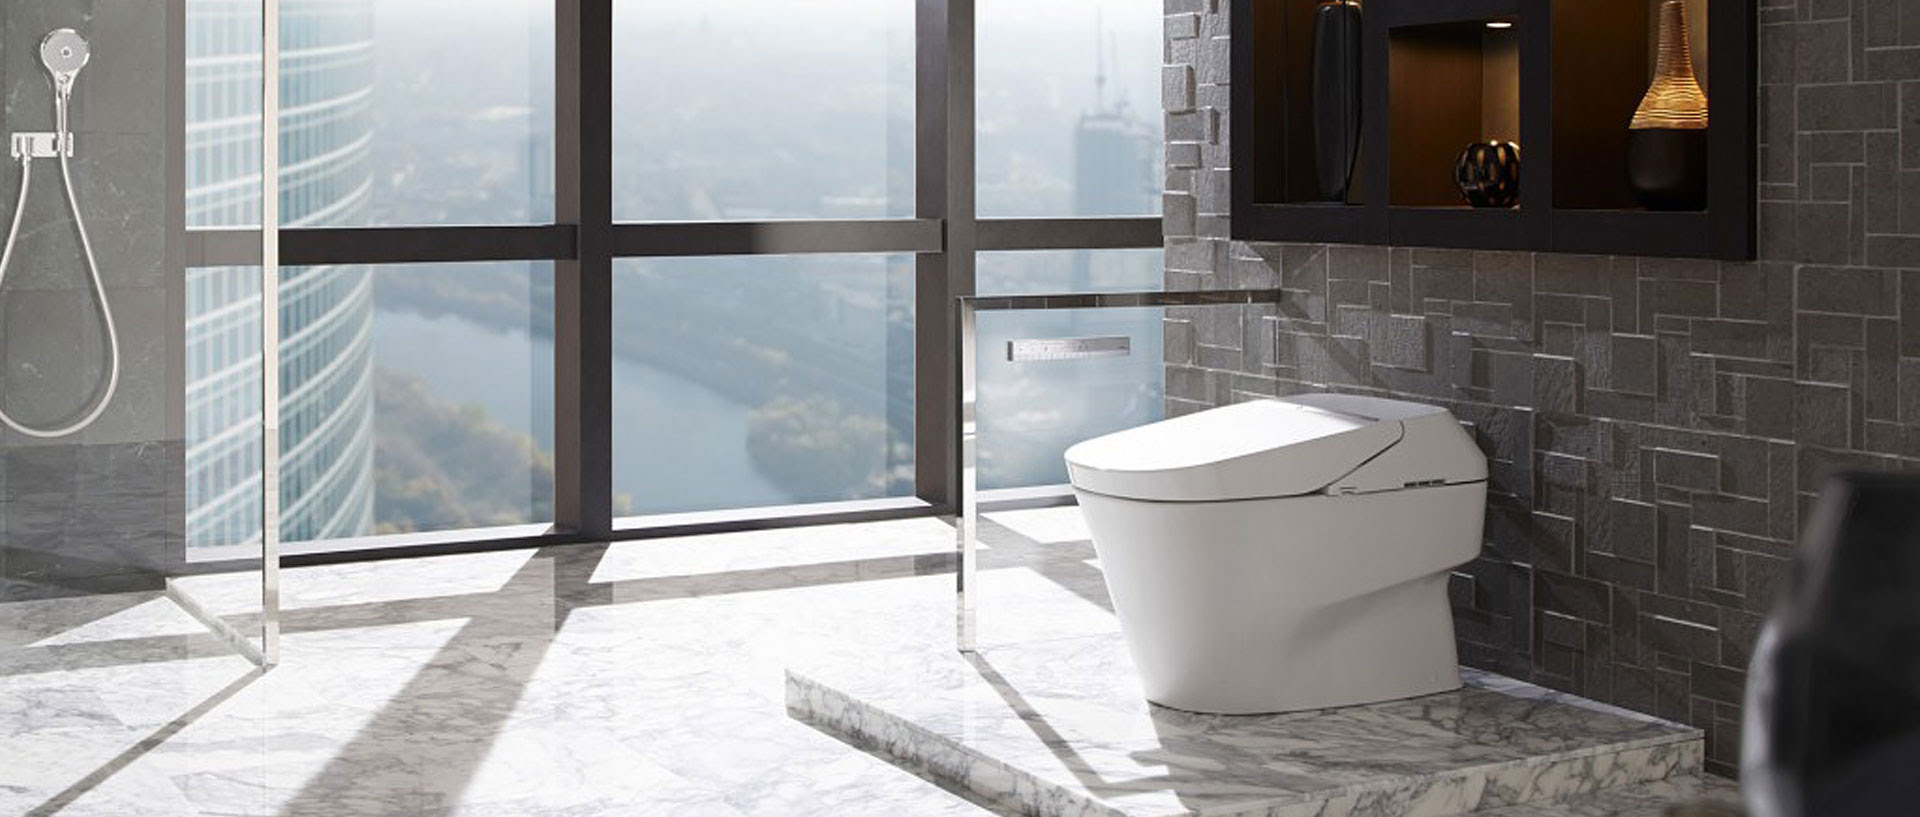 What you need to know when buying a toilet